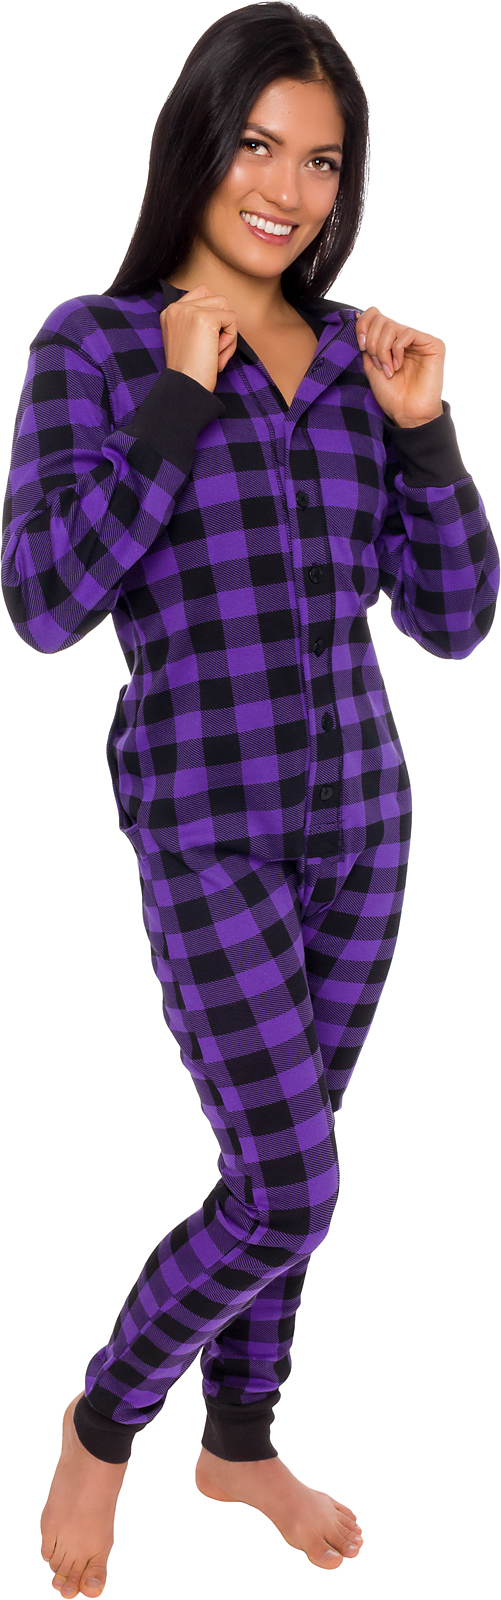 silver lilly silver lilly unisex adult plaid thermal one piece union suit pajamas w drop seat walmart com walmart com